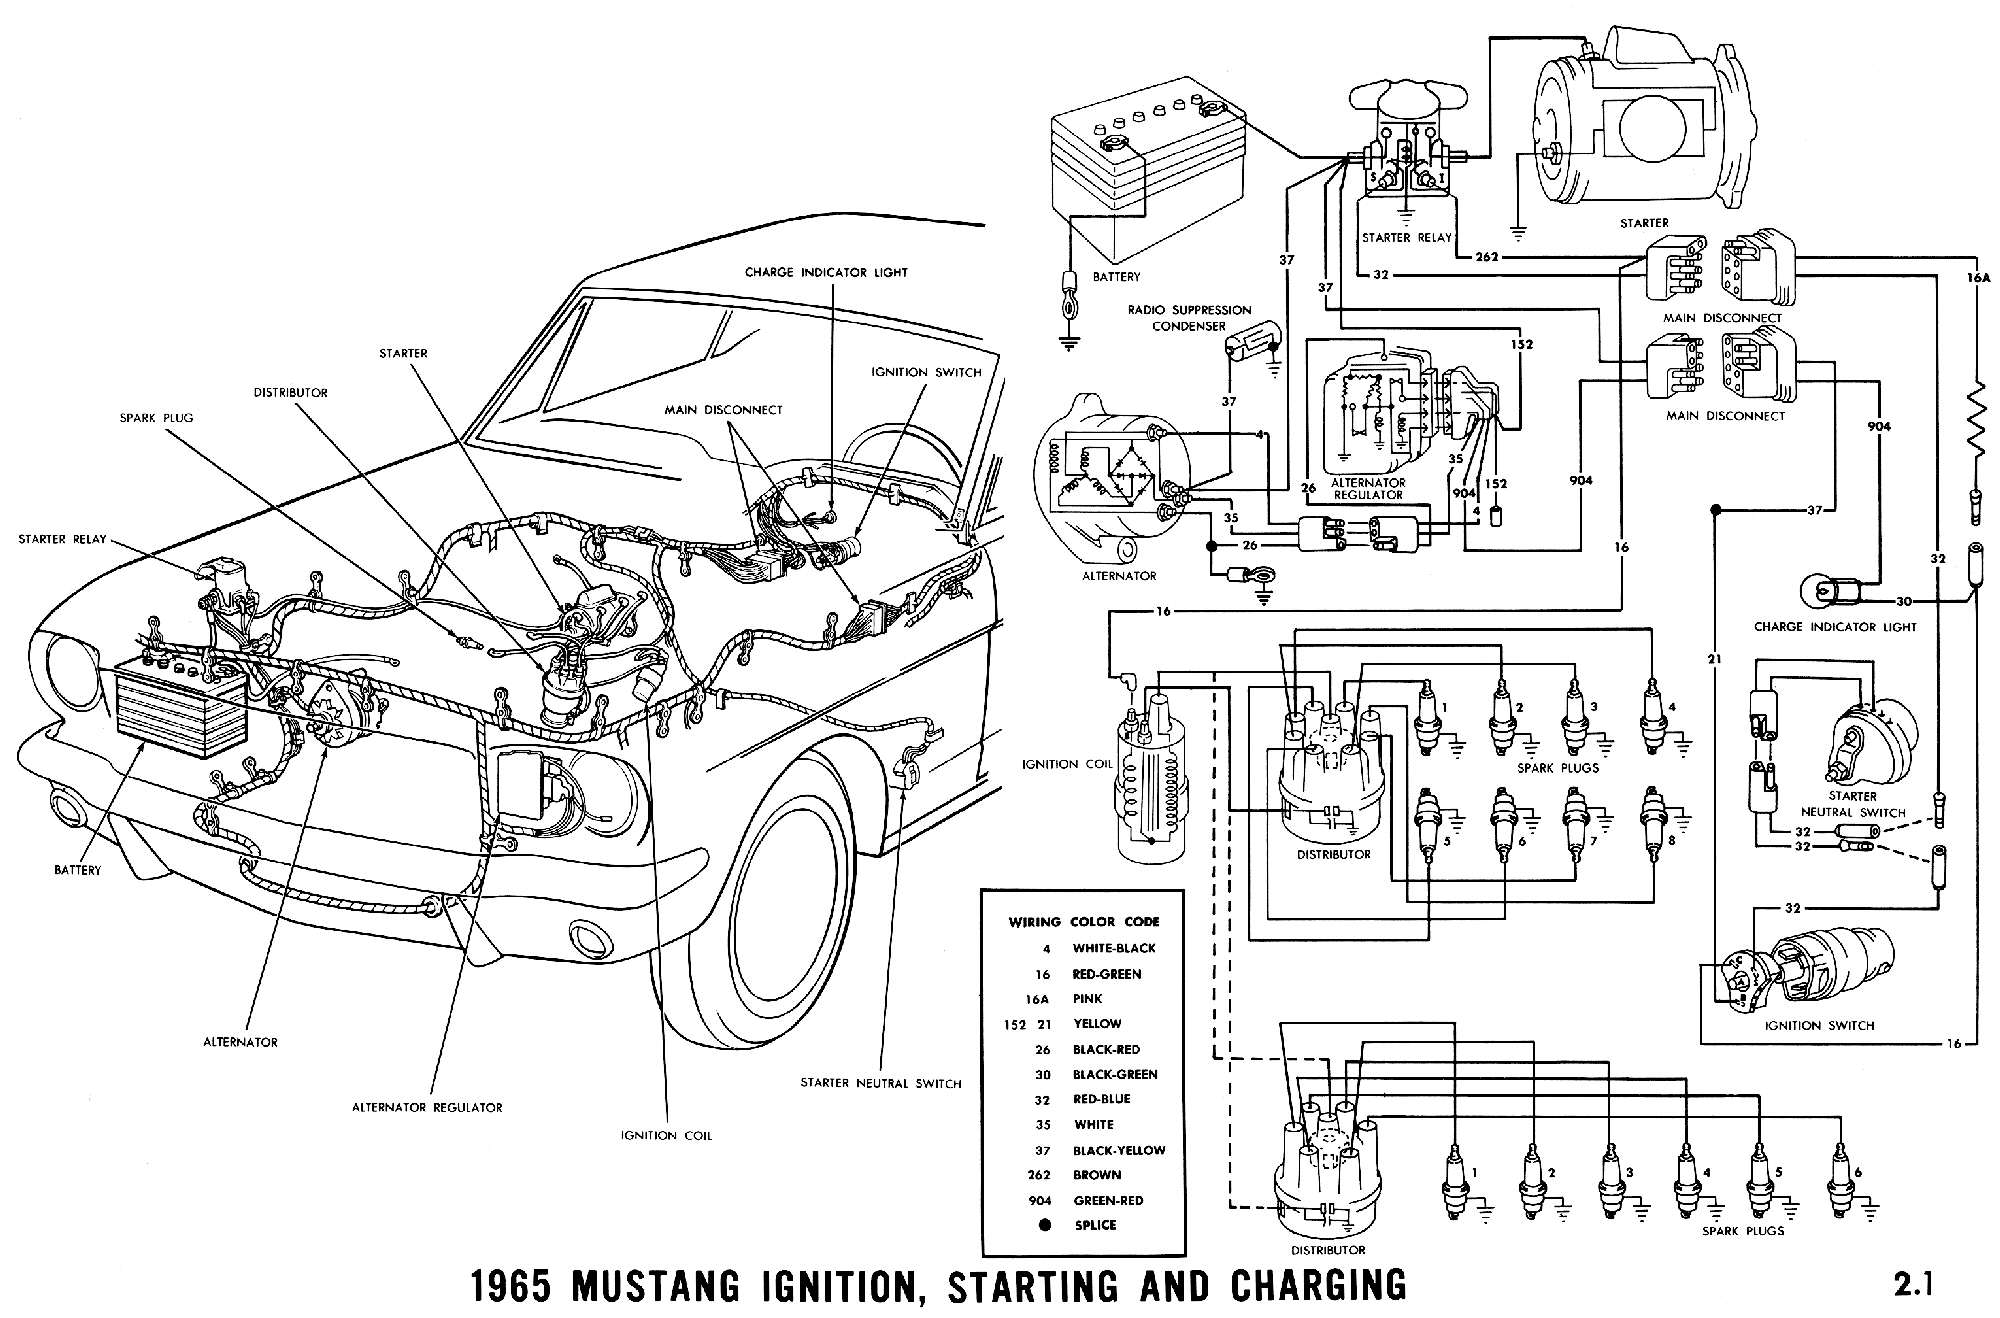 1965c 1965 mustang wiring diagrams average joe restoration 1969 ford mustang ignition wiring diagram at n-0.co